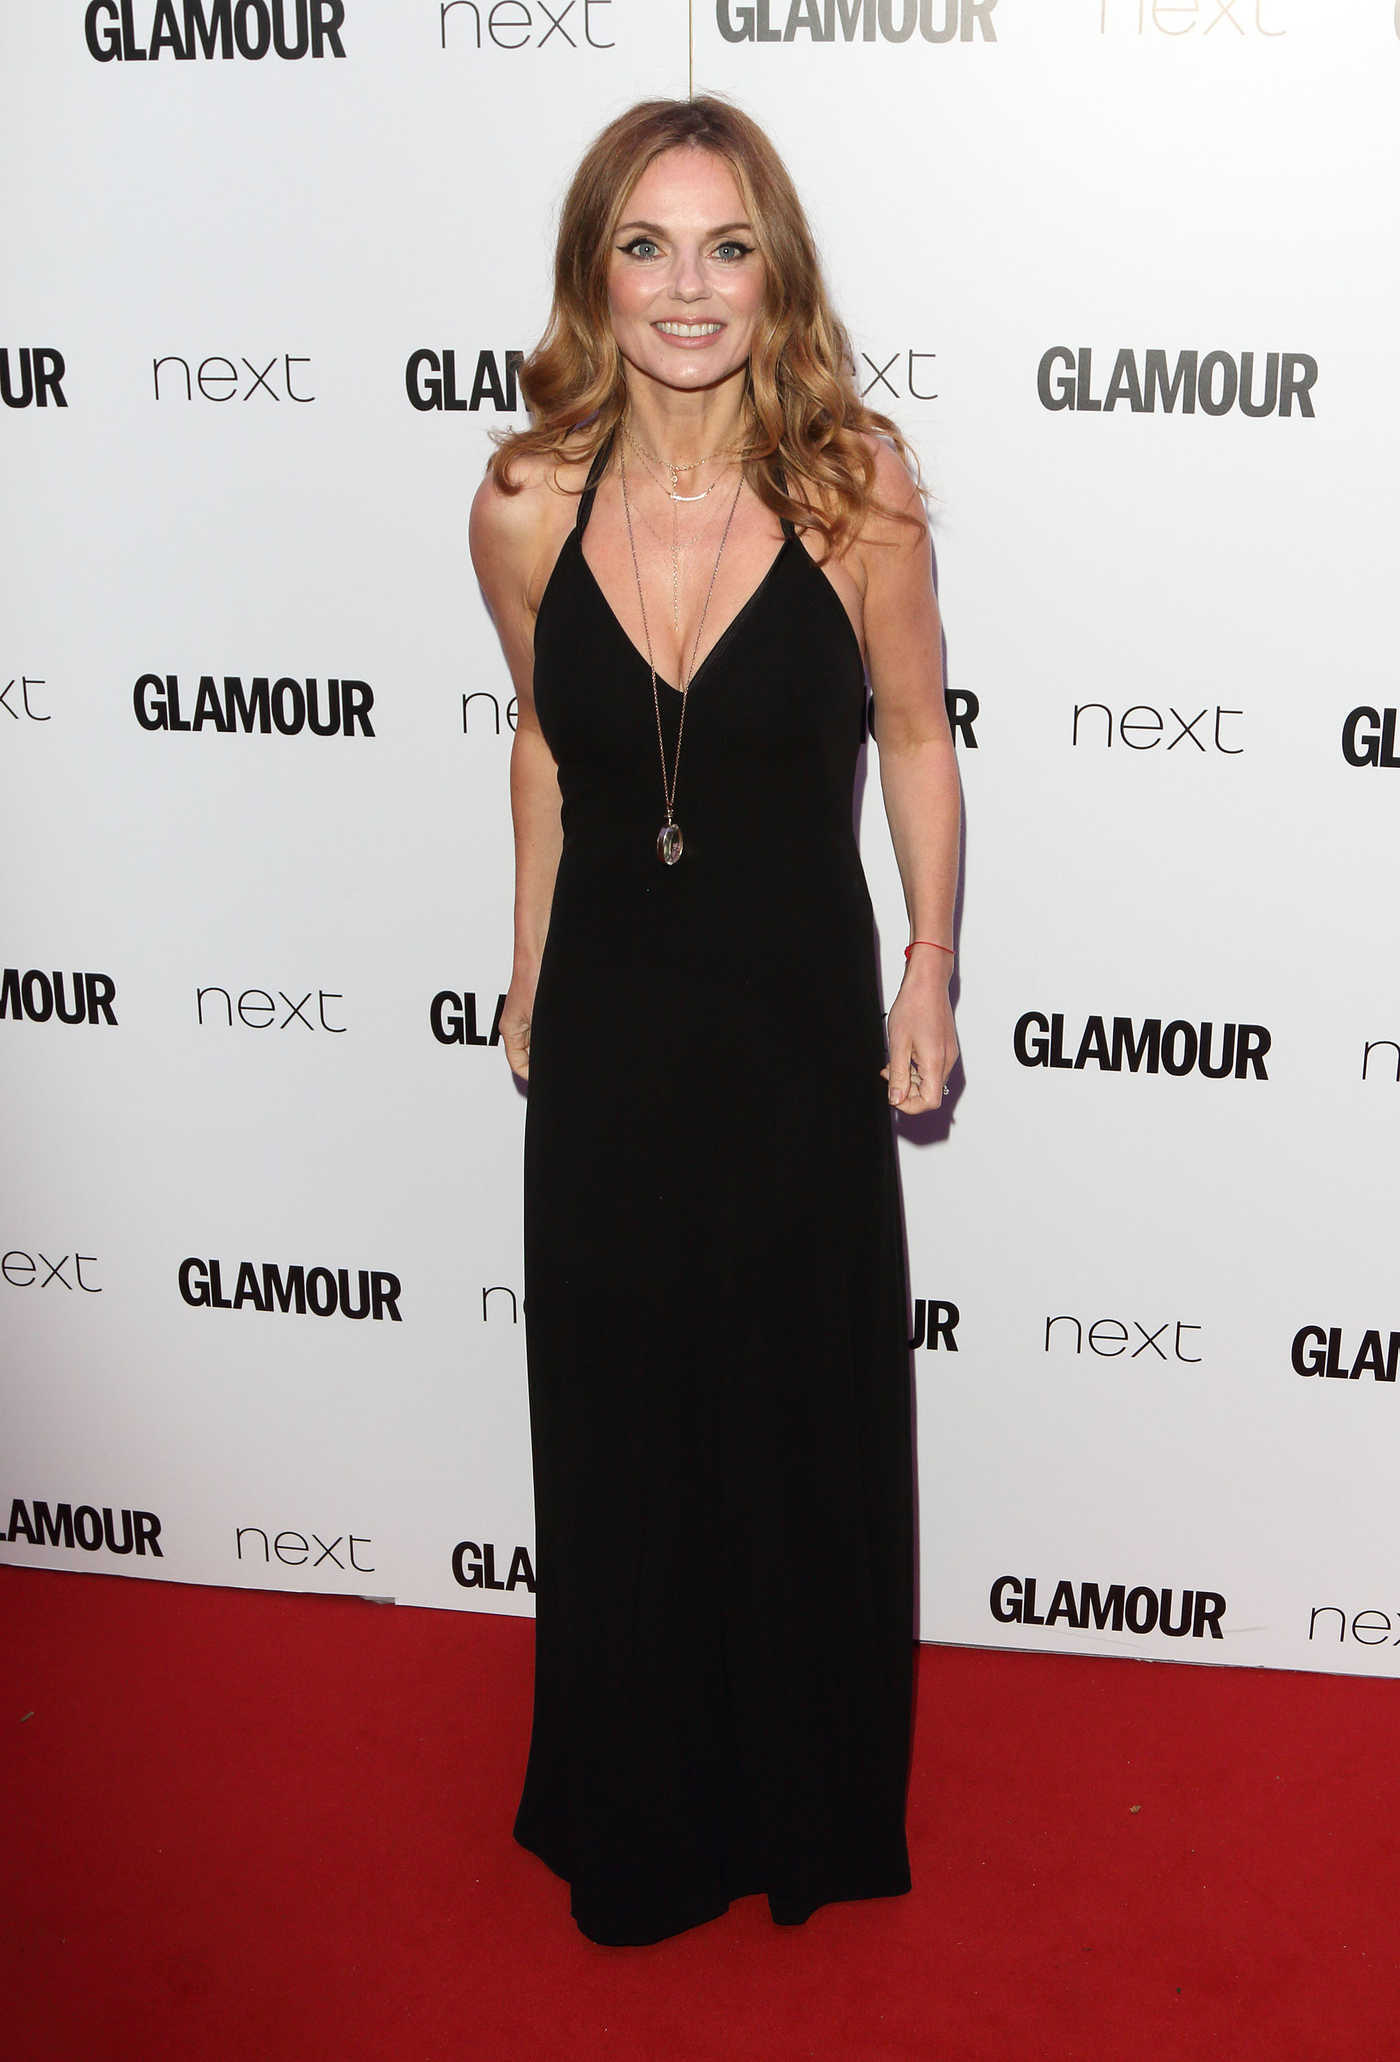 Geri Halliwell at the Glamour Women of The Year Awards in London 06/06/2017